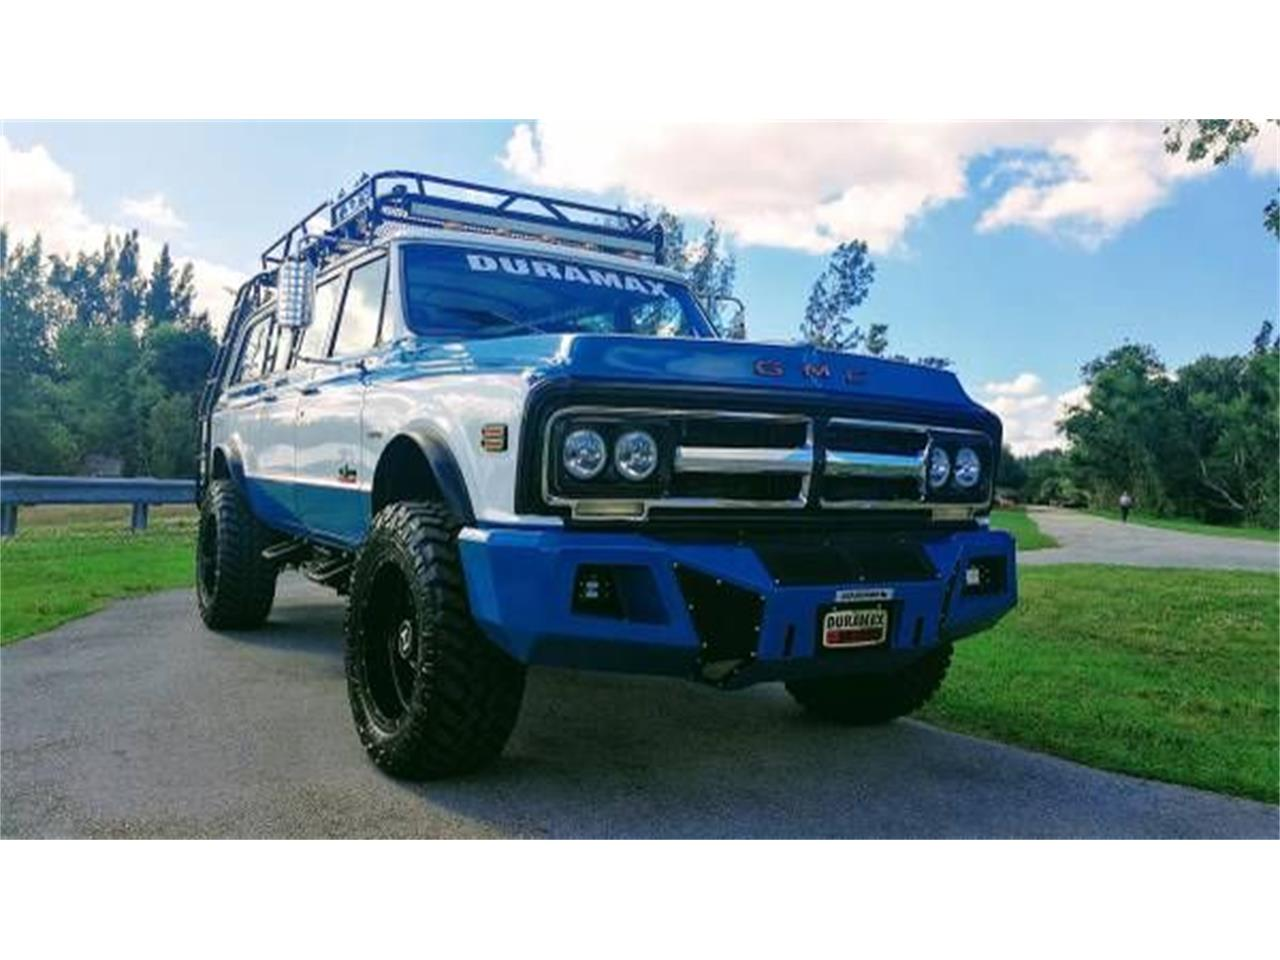 Large Picture of Classic '72 GMC Suburban - $57,995.00 Offered by Classic Car Deals - O2Y7